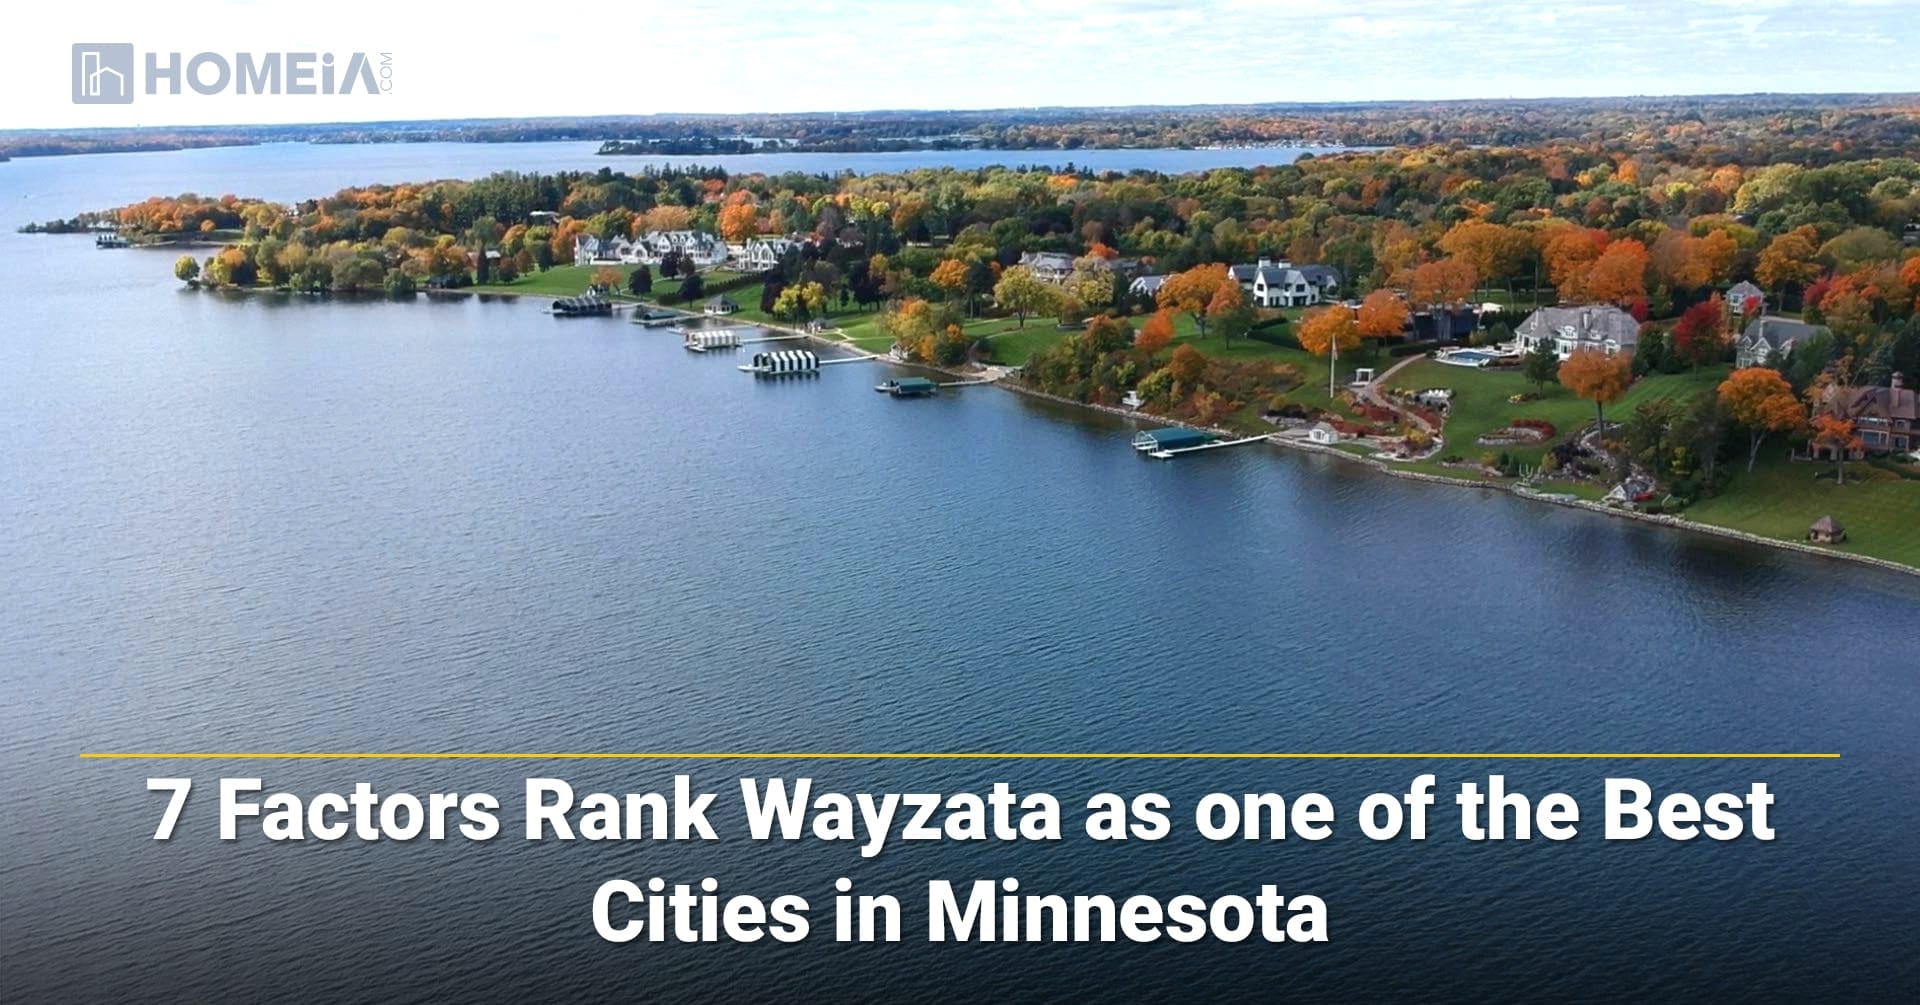 7 Factors Rank Wayzata, MN as One of the Best Cities for Living in 2021